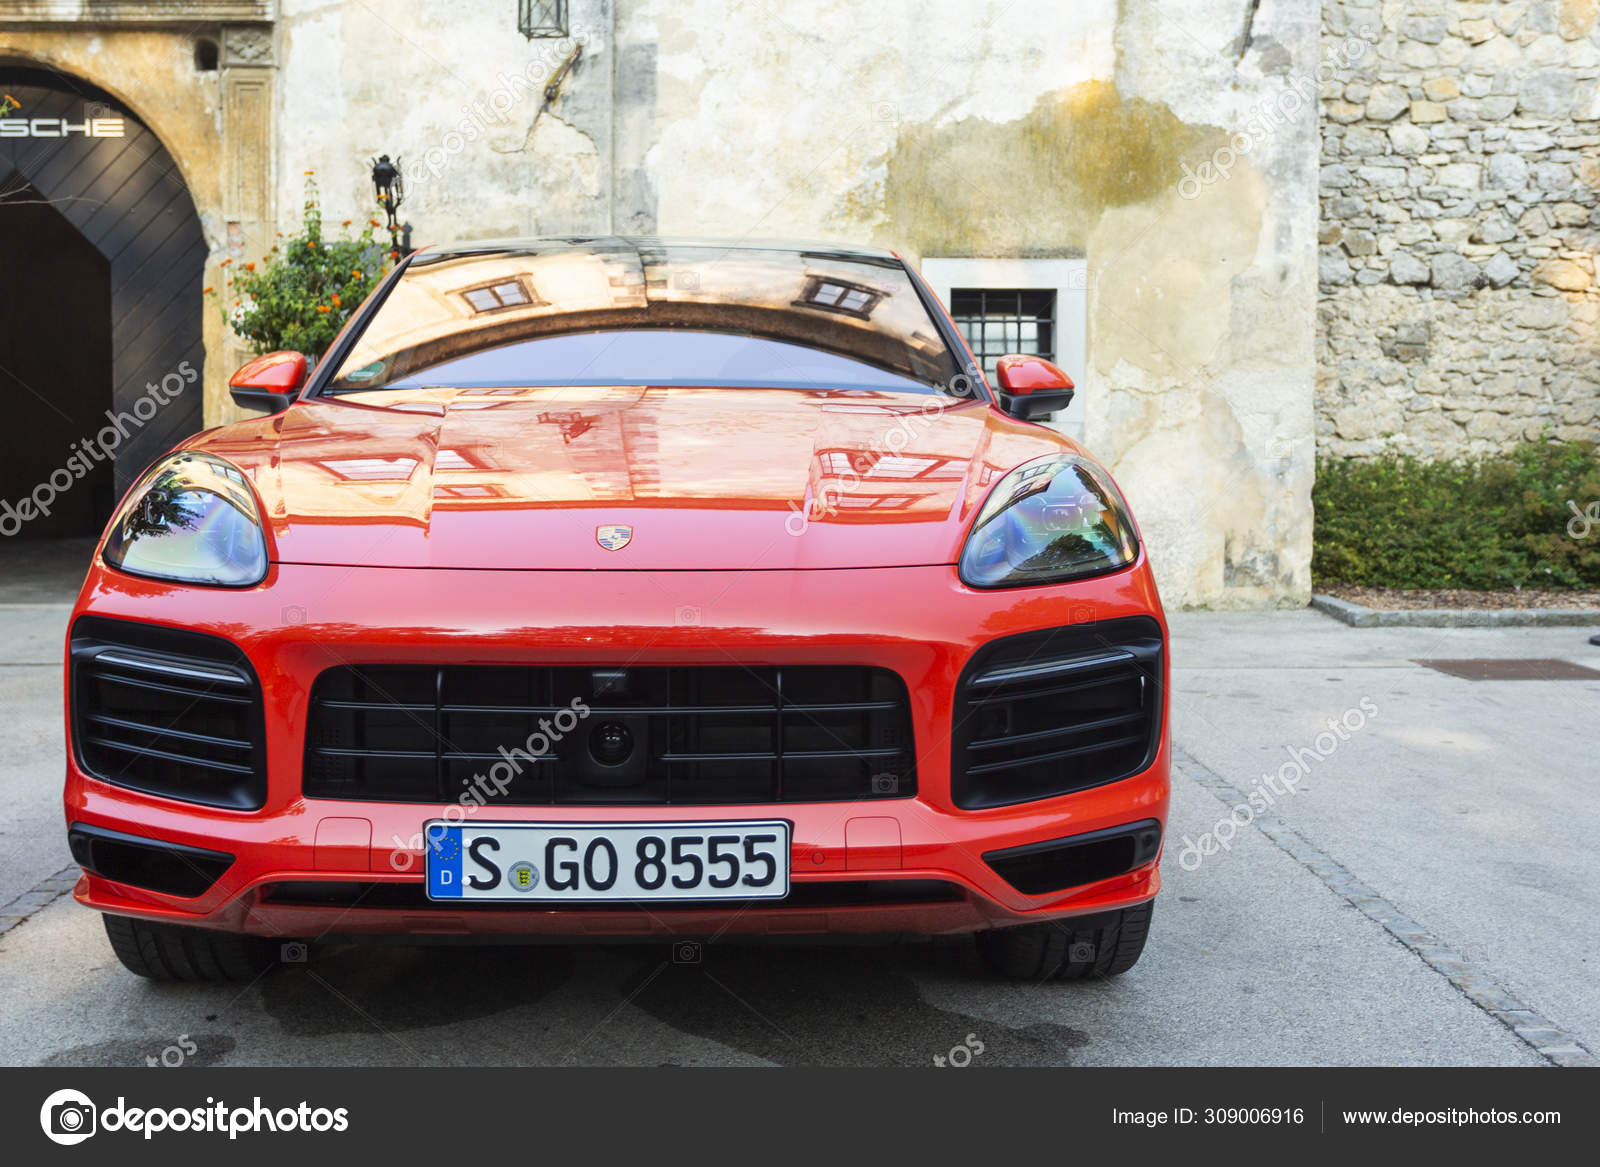 Red Porsche Cayenne Stock Photos Royalty Free Red Porsche Cayenne Images Depositphotos